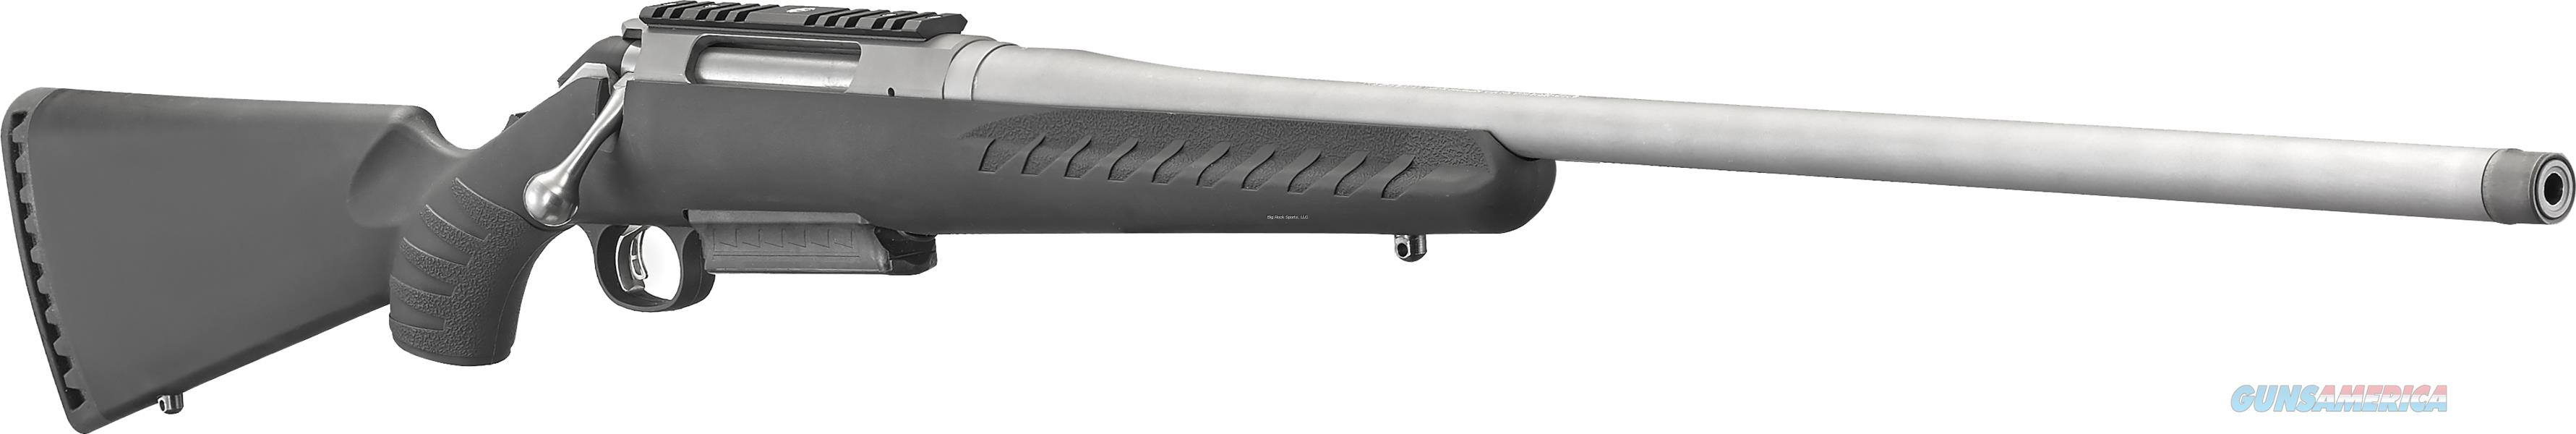 "Ruger American Bolt-Action All Weather Rifle 300 Win Mag 24"" Syn Matte S/S 4Rd 16912  Guns > Rifles > R Misc Rifles"